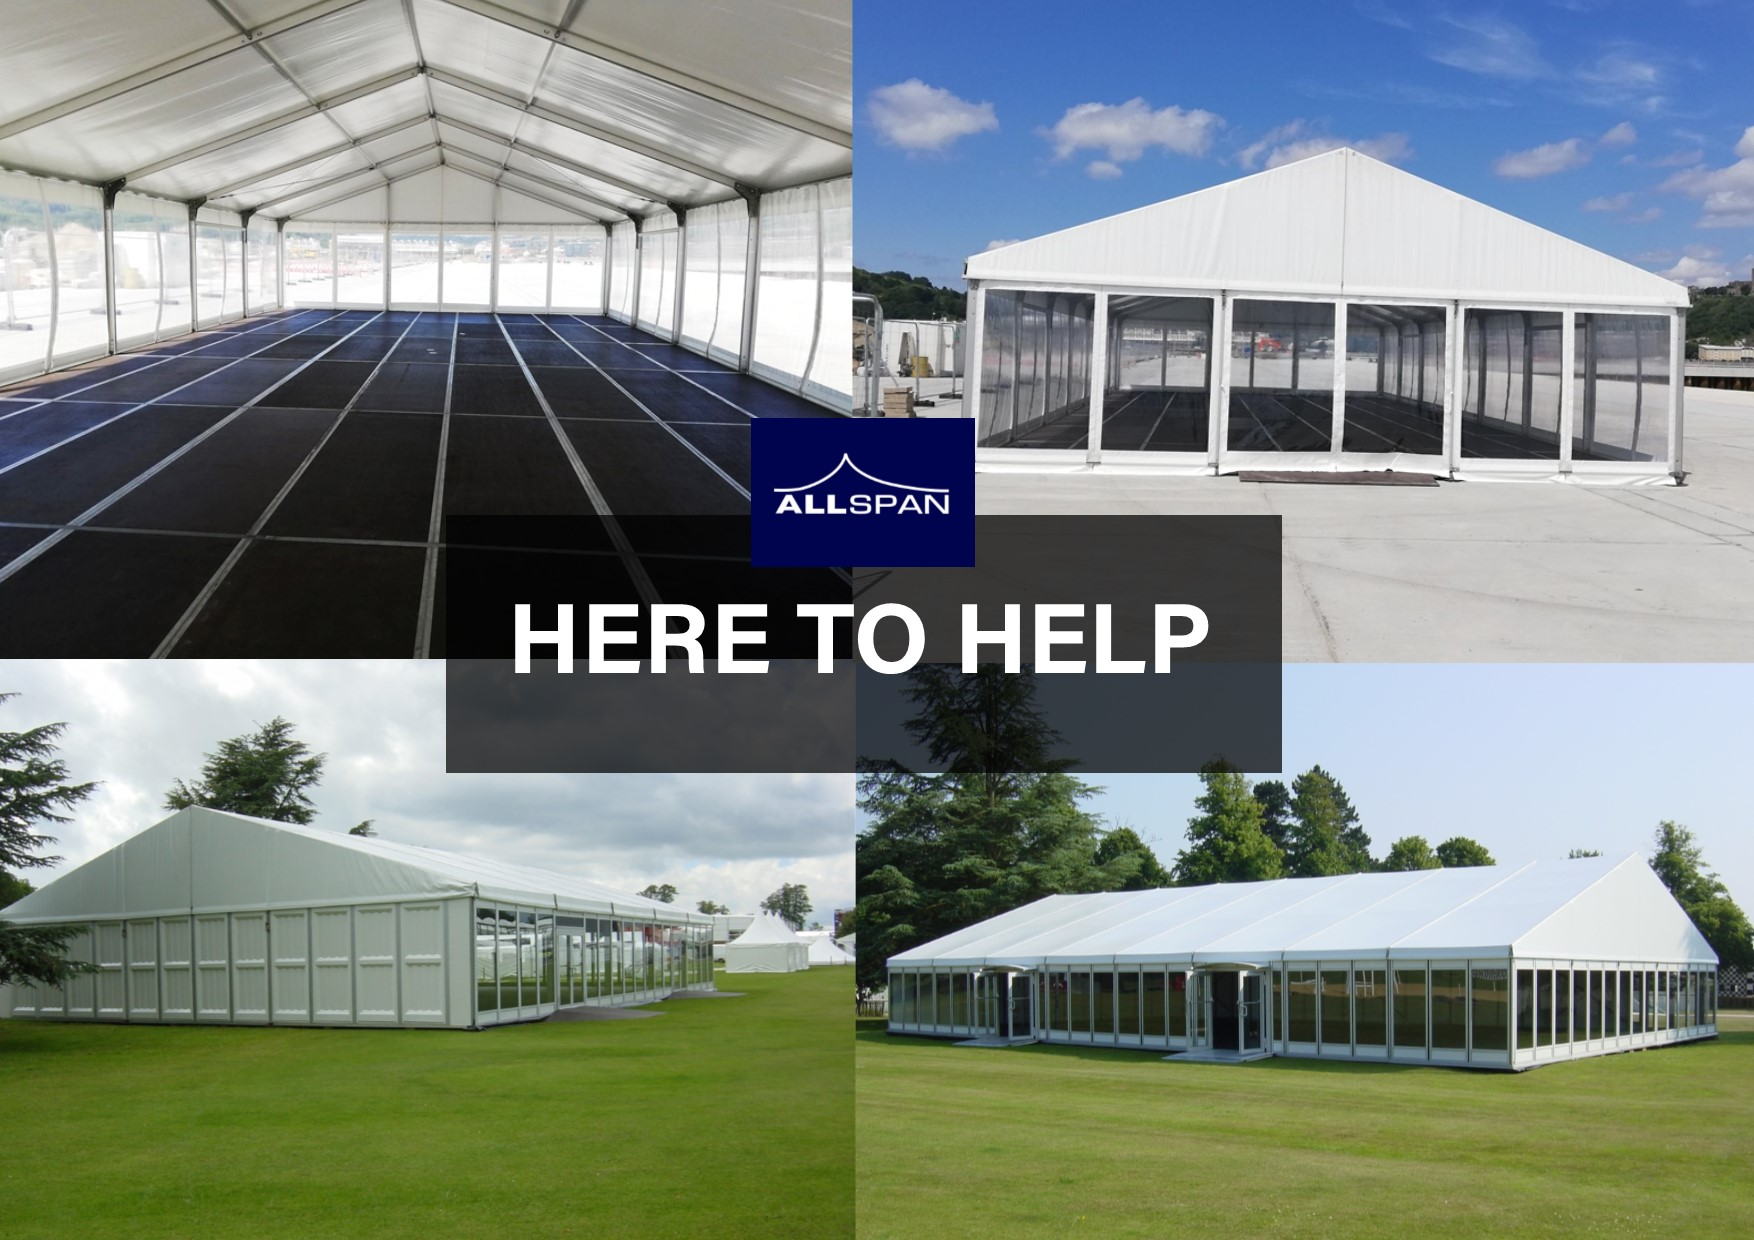 Covid 19 emergency temporary structures for hospitals